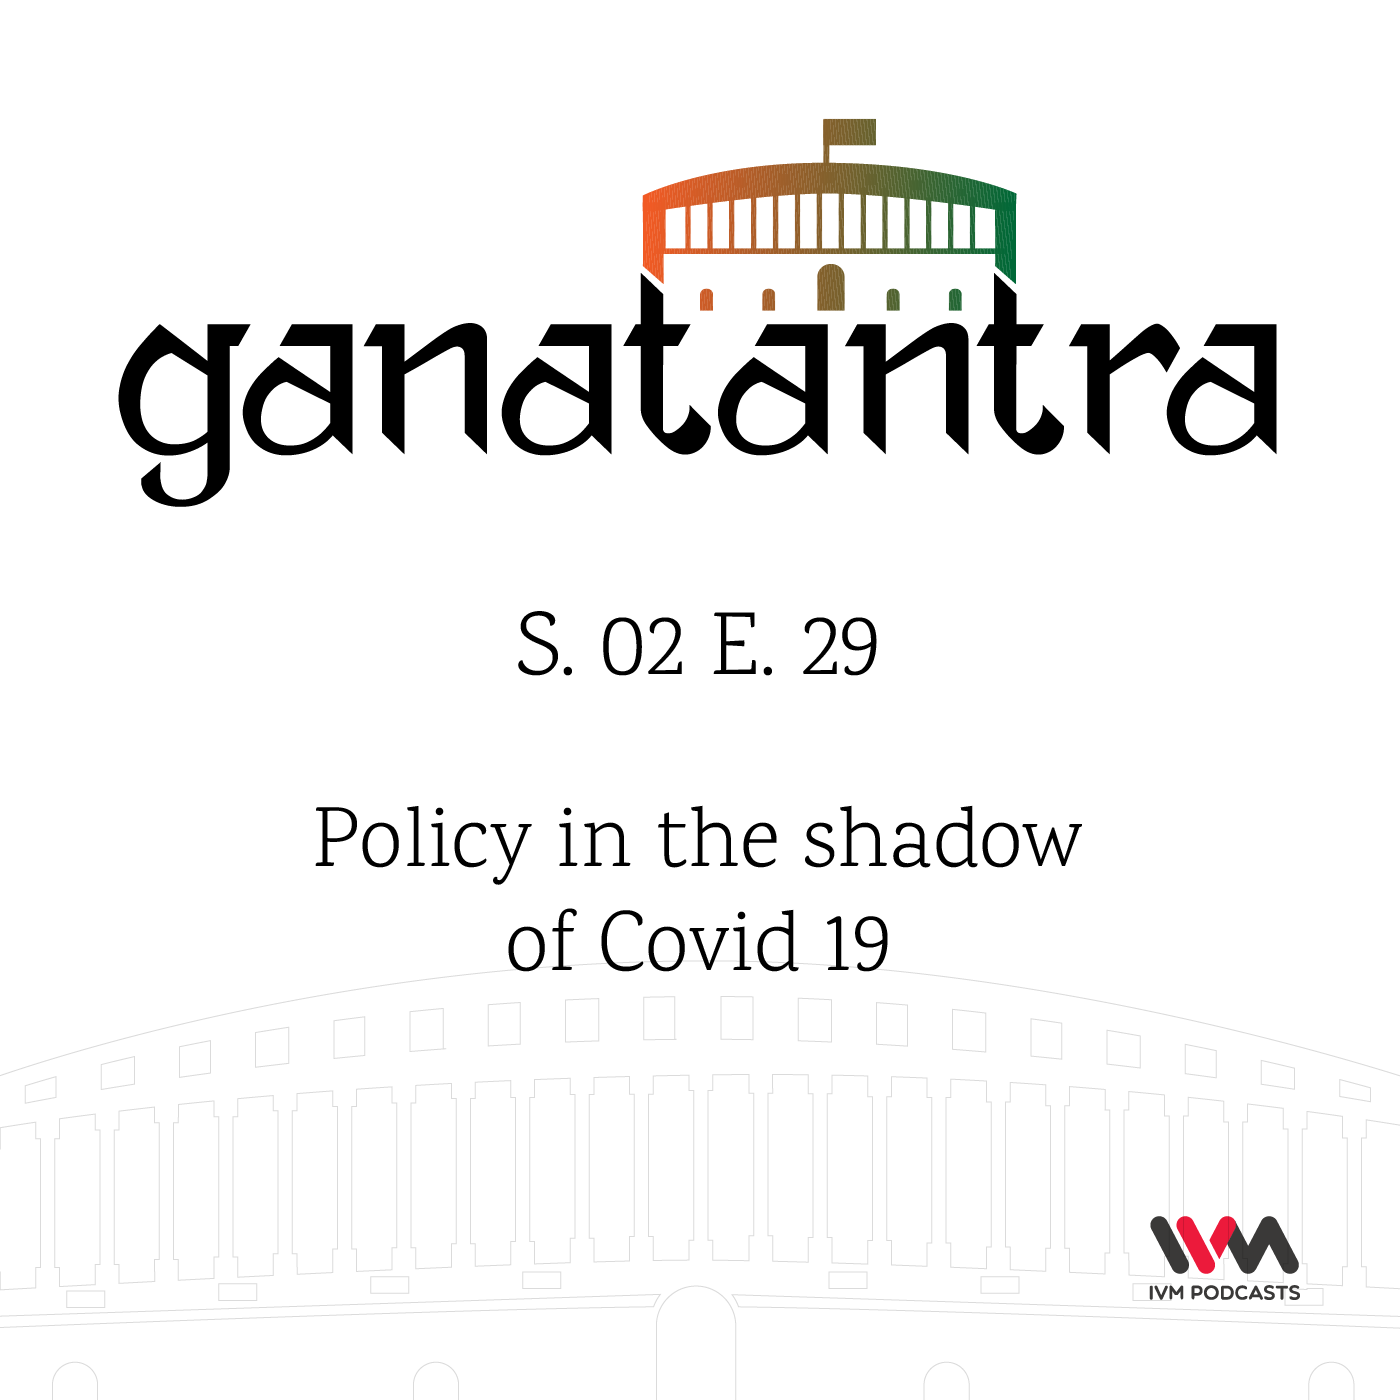 S02 E29: Policy in the shadow of Covid 19